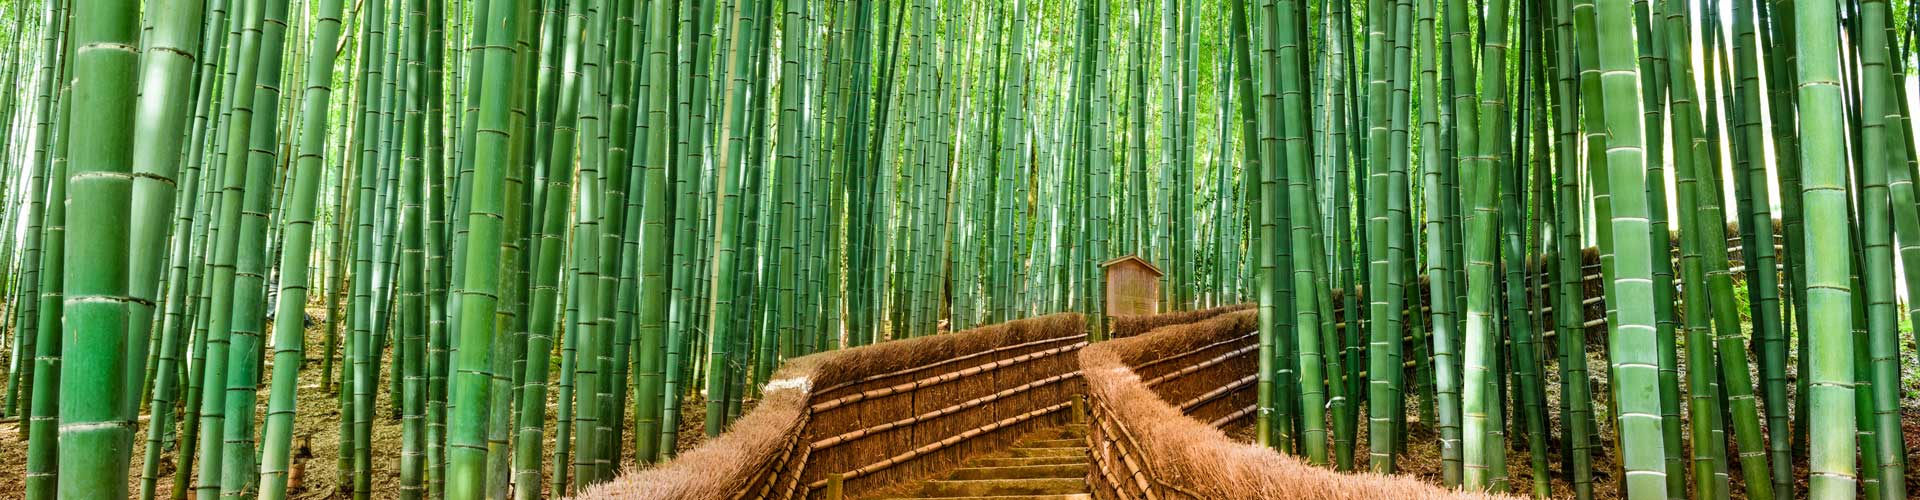 Boody Bamboo Forest